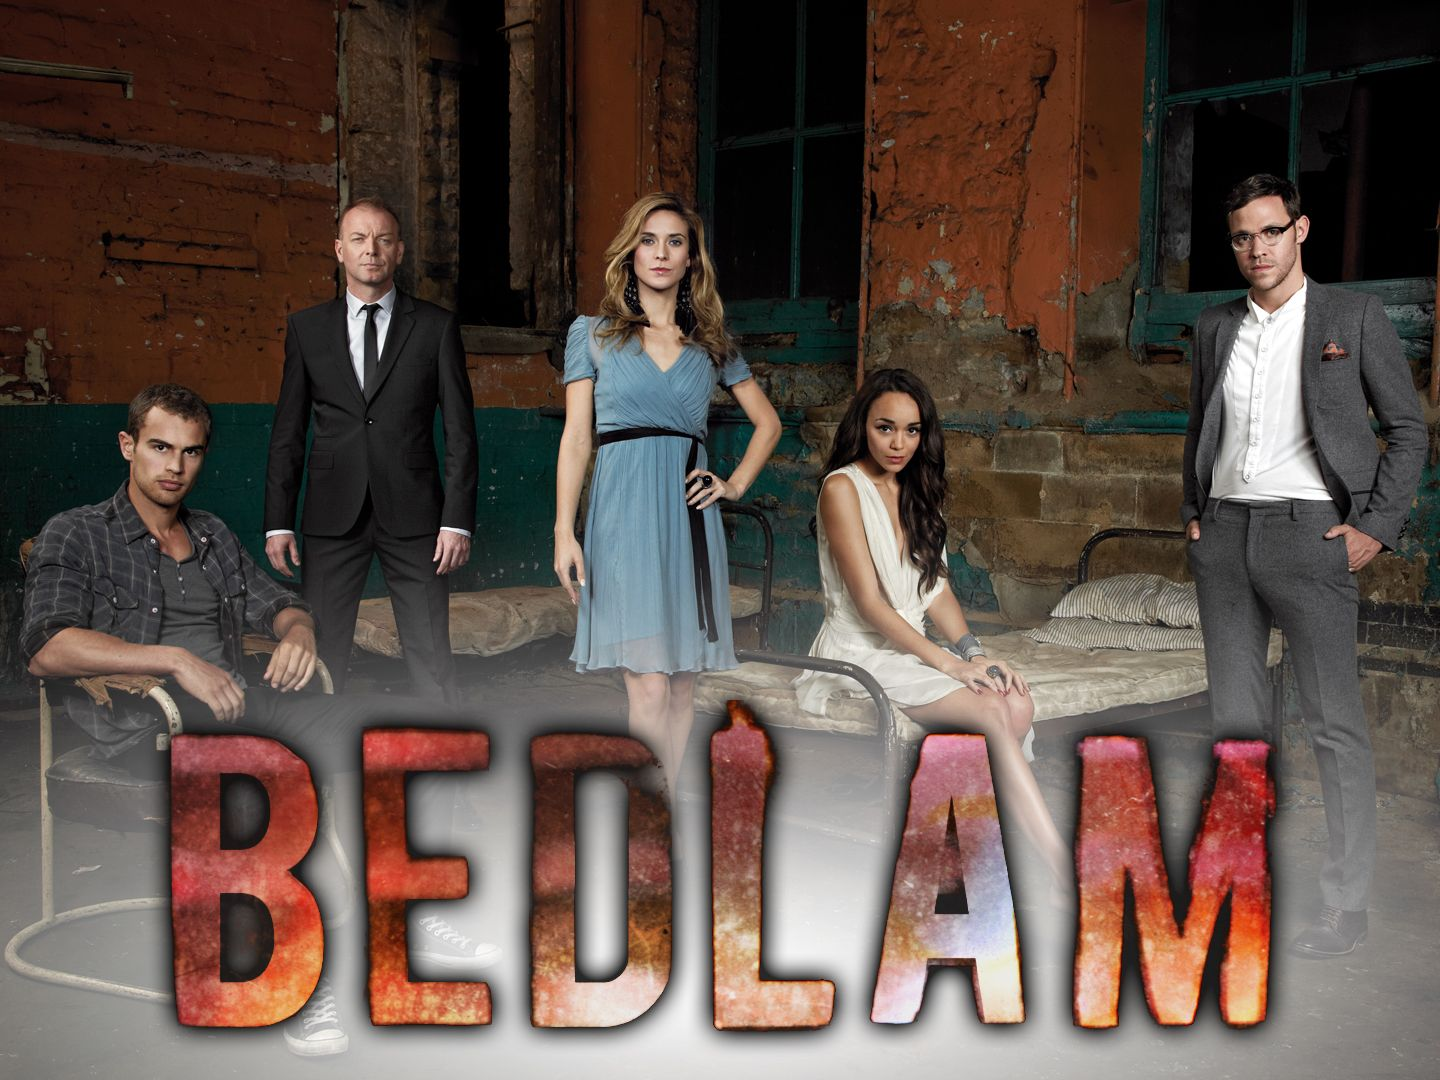 BEDLAM Drama and supernatural chills in this series